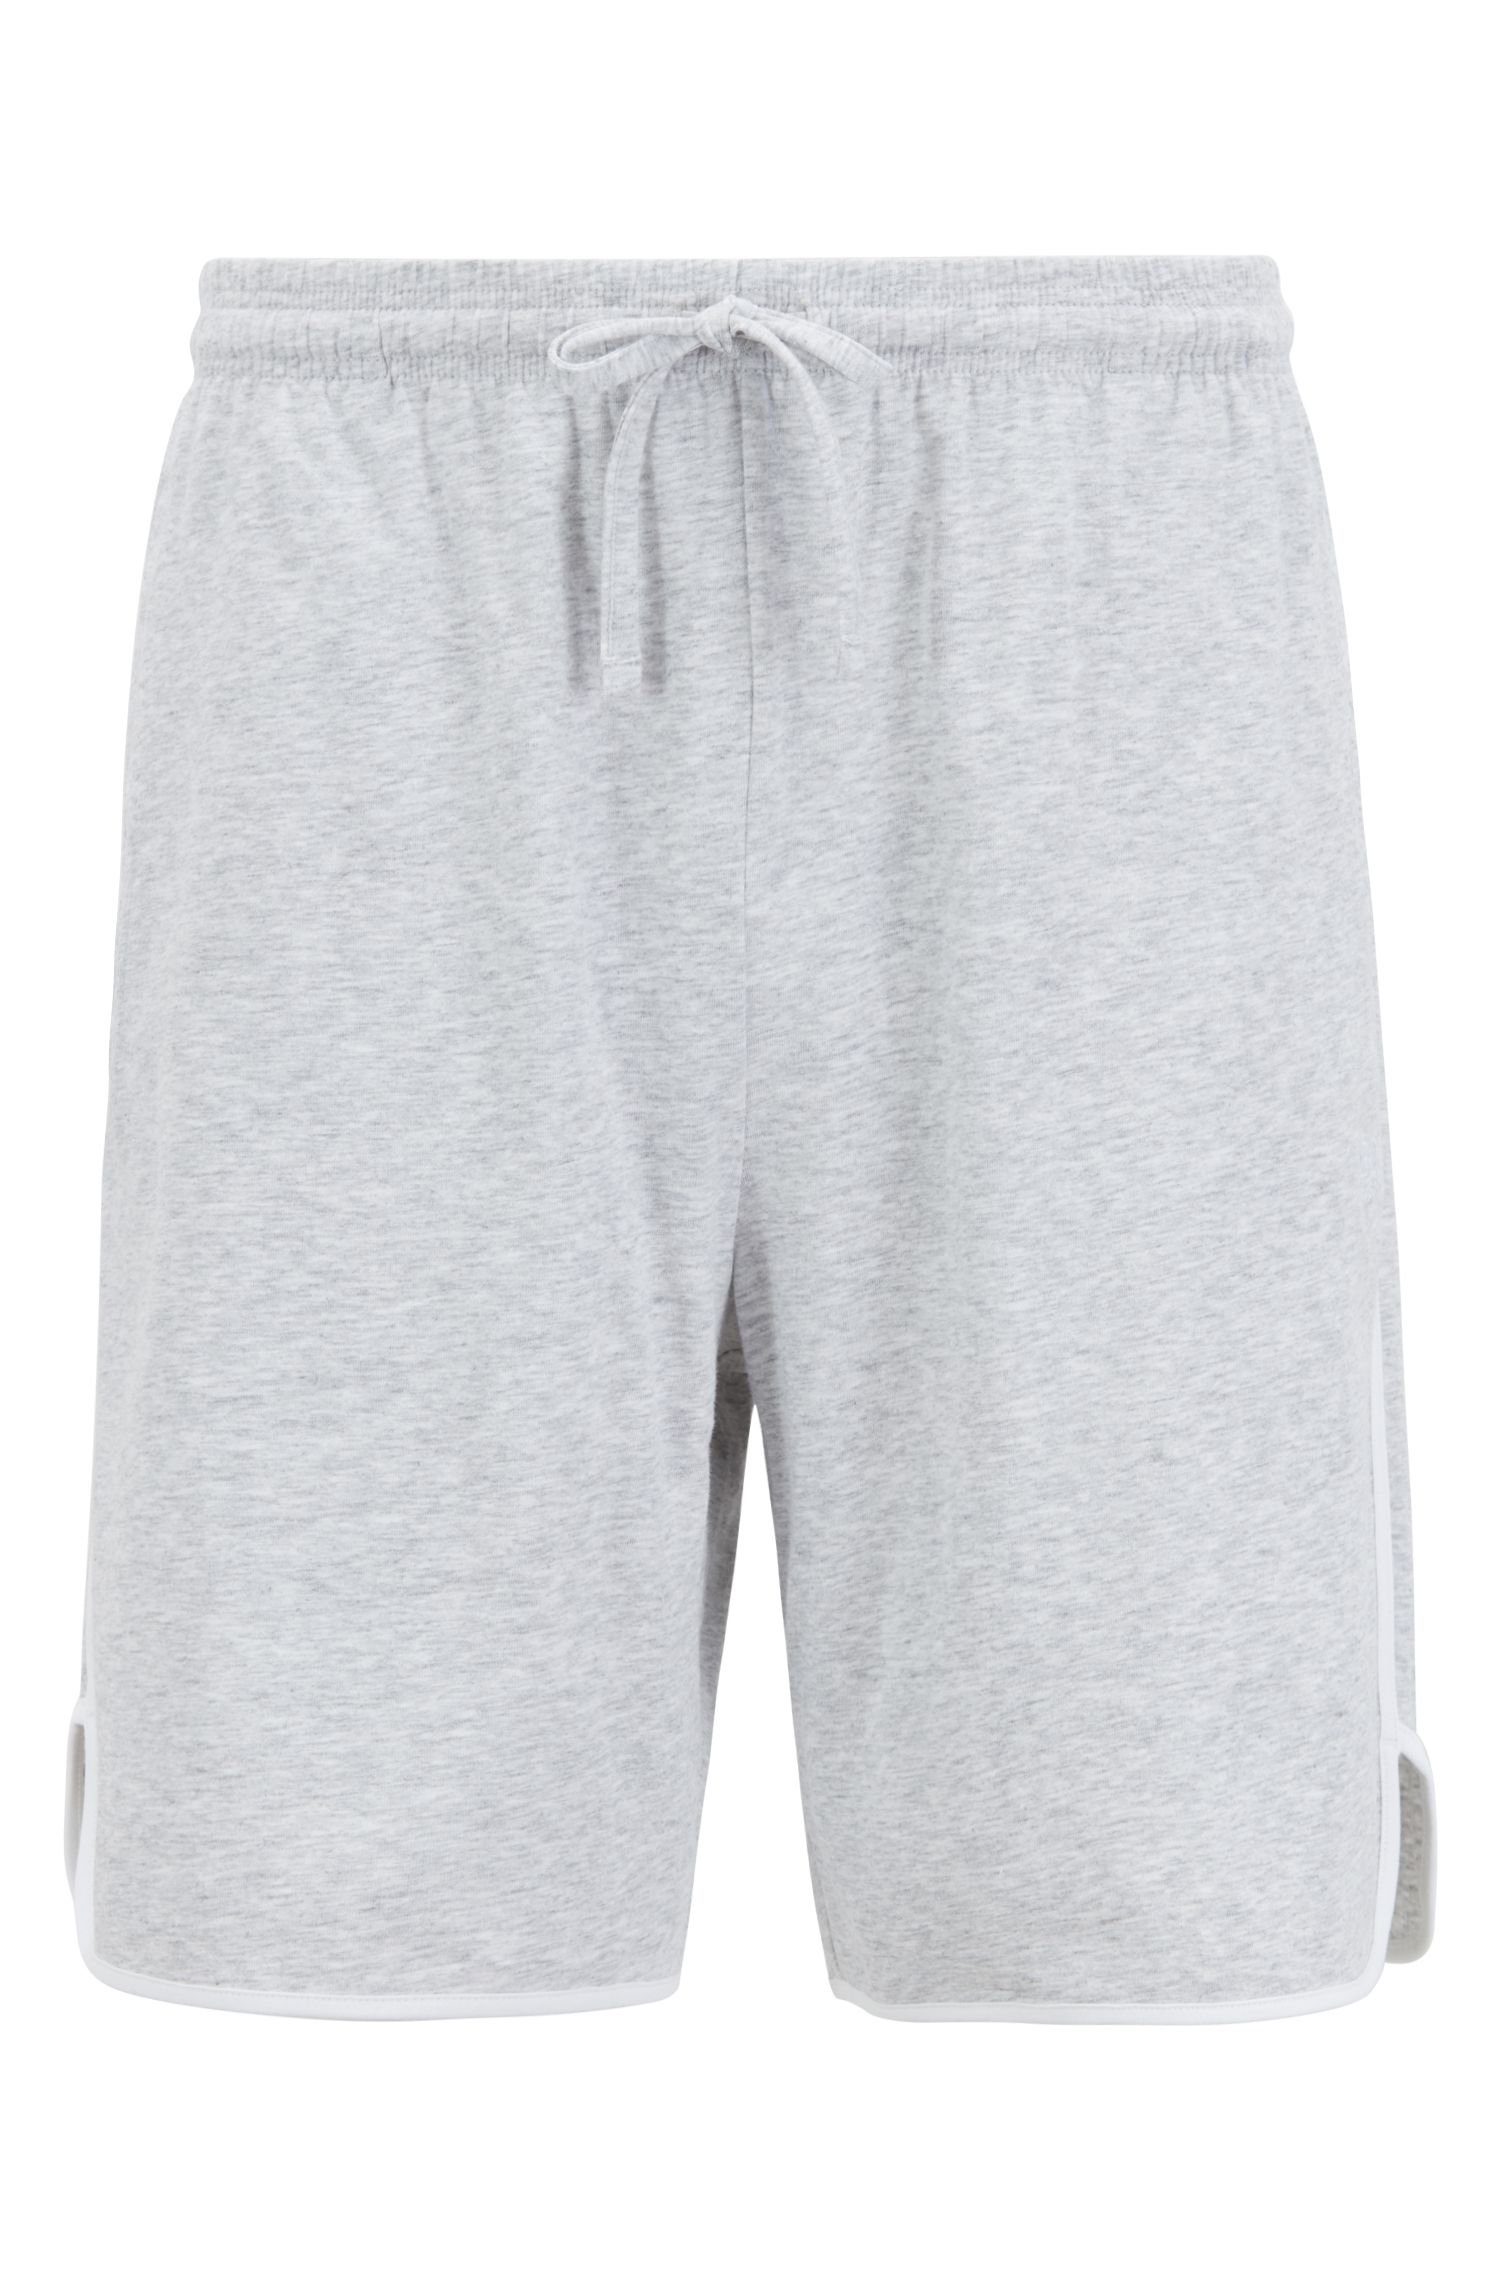 Loungewear-Shorts aus Single Jersey mit kontrastfarbenen Paspeln